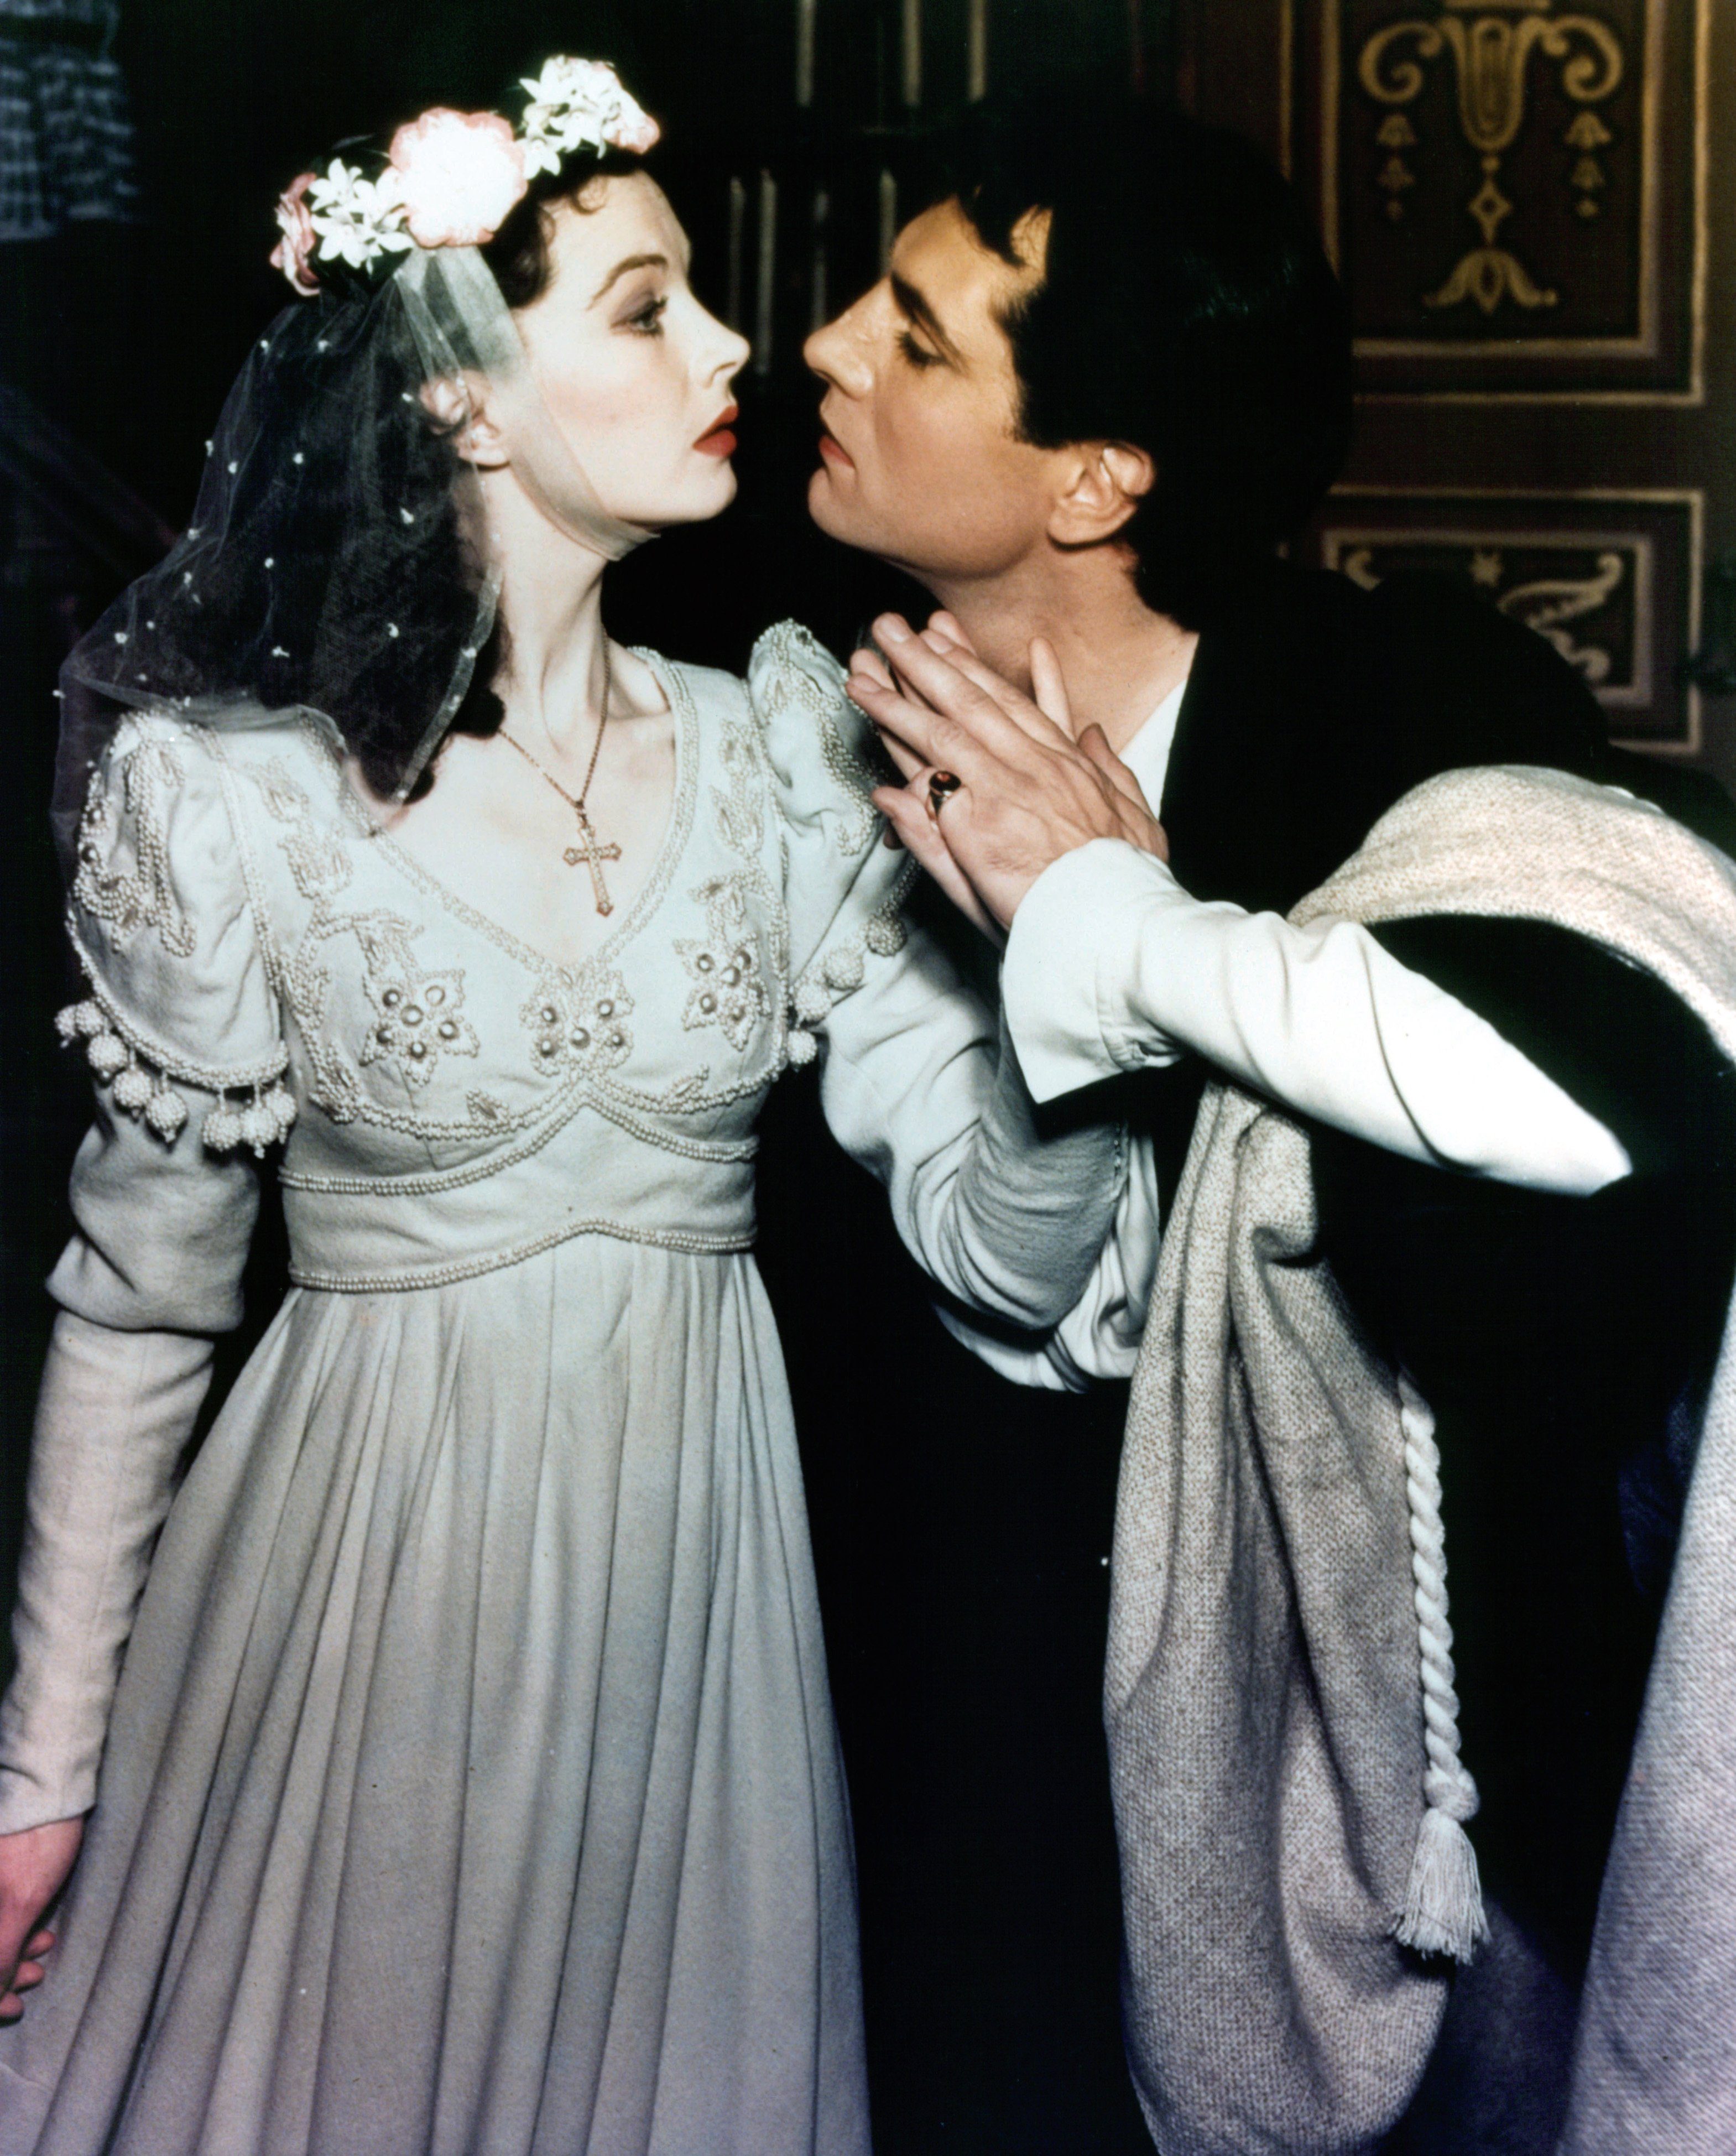 Image Credits: Getty Images | Vivien Leigh and Laurence Olivier performing together